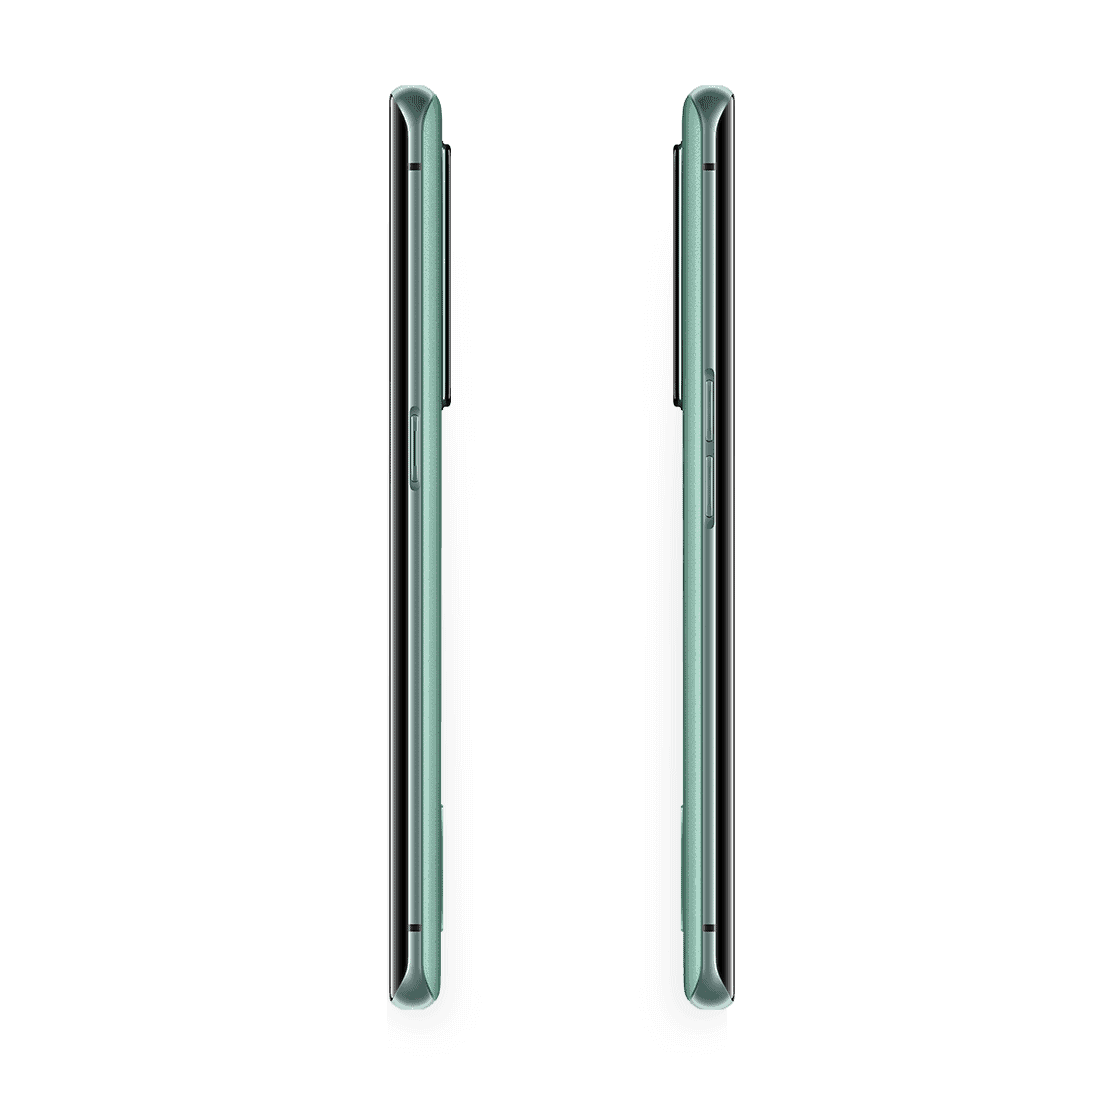 OPPO Find X2 Pro Green Vegan Leather image 4